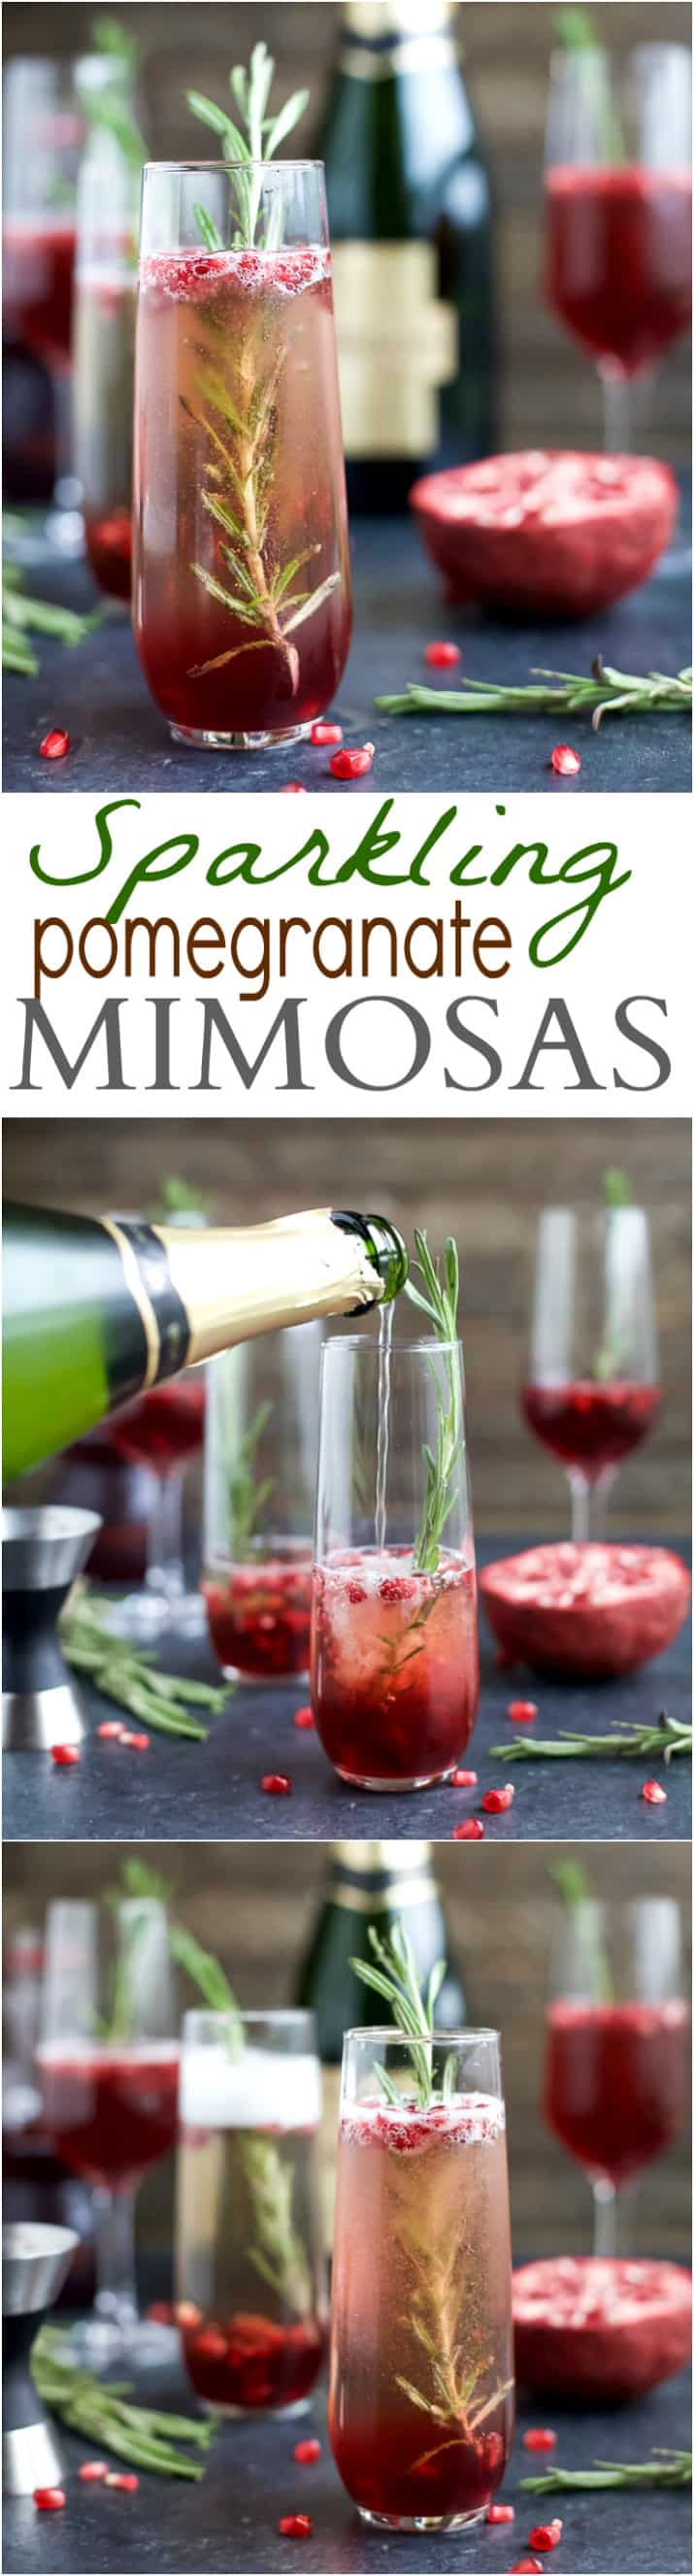 Sparkling Pomegranate Mimosas | Easy Champagne Cocktail Recipe